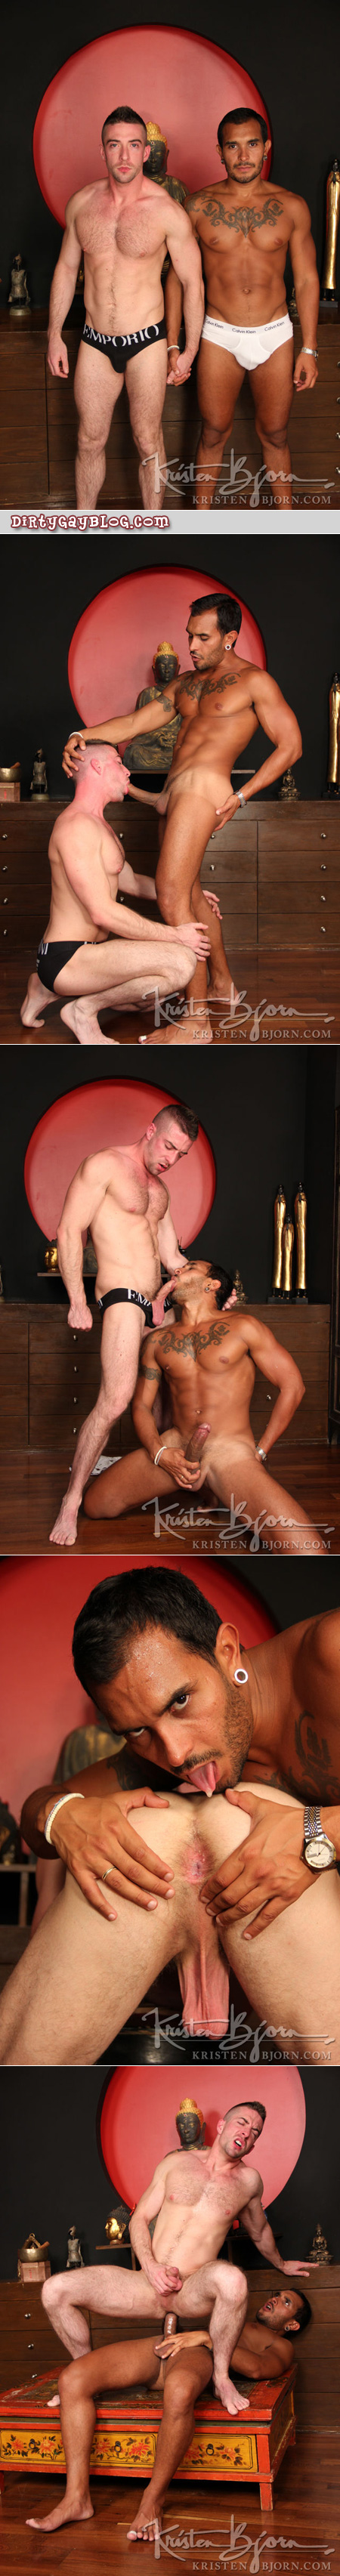 Hung tattooed and pierced stud fucks a hairy white guy.  Both of them are wearing briefs.